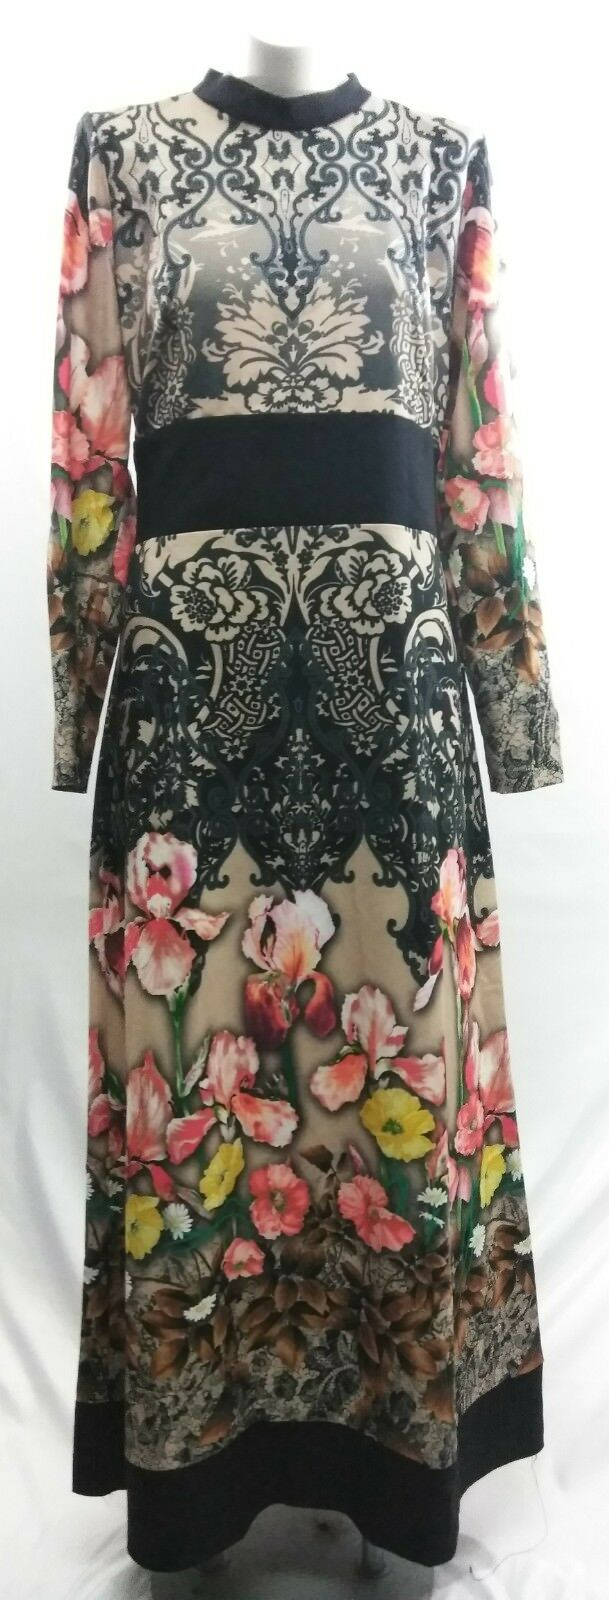 APPLELINE DESENLI ELBISE TAS PRINT LONG SLEEVES BEAUTIFUL DRESS Größe 42(US 4-6)